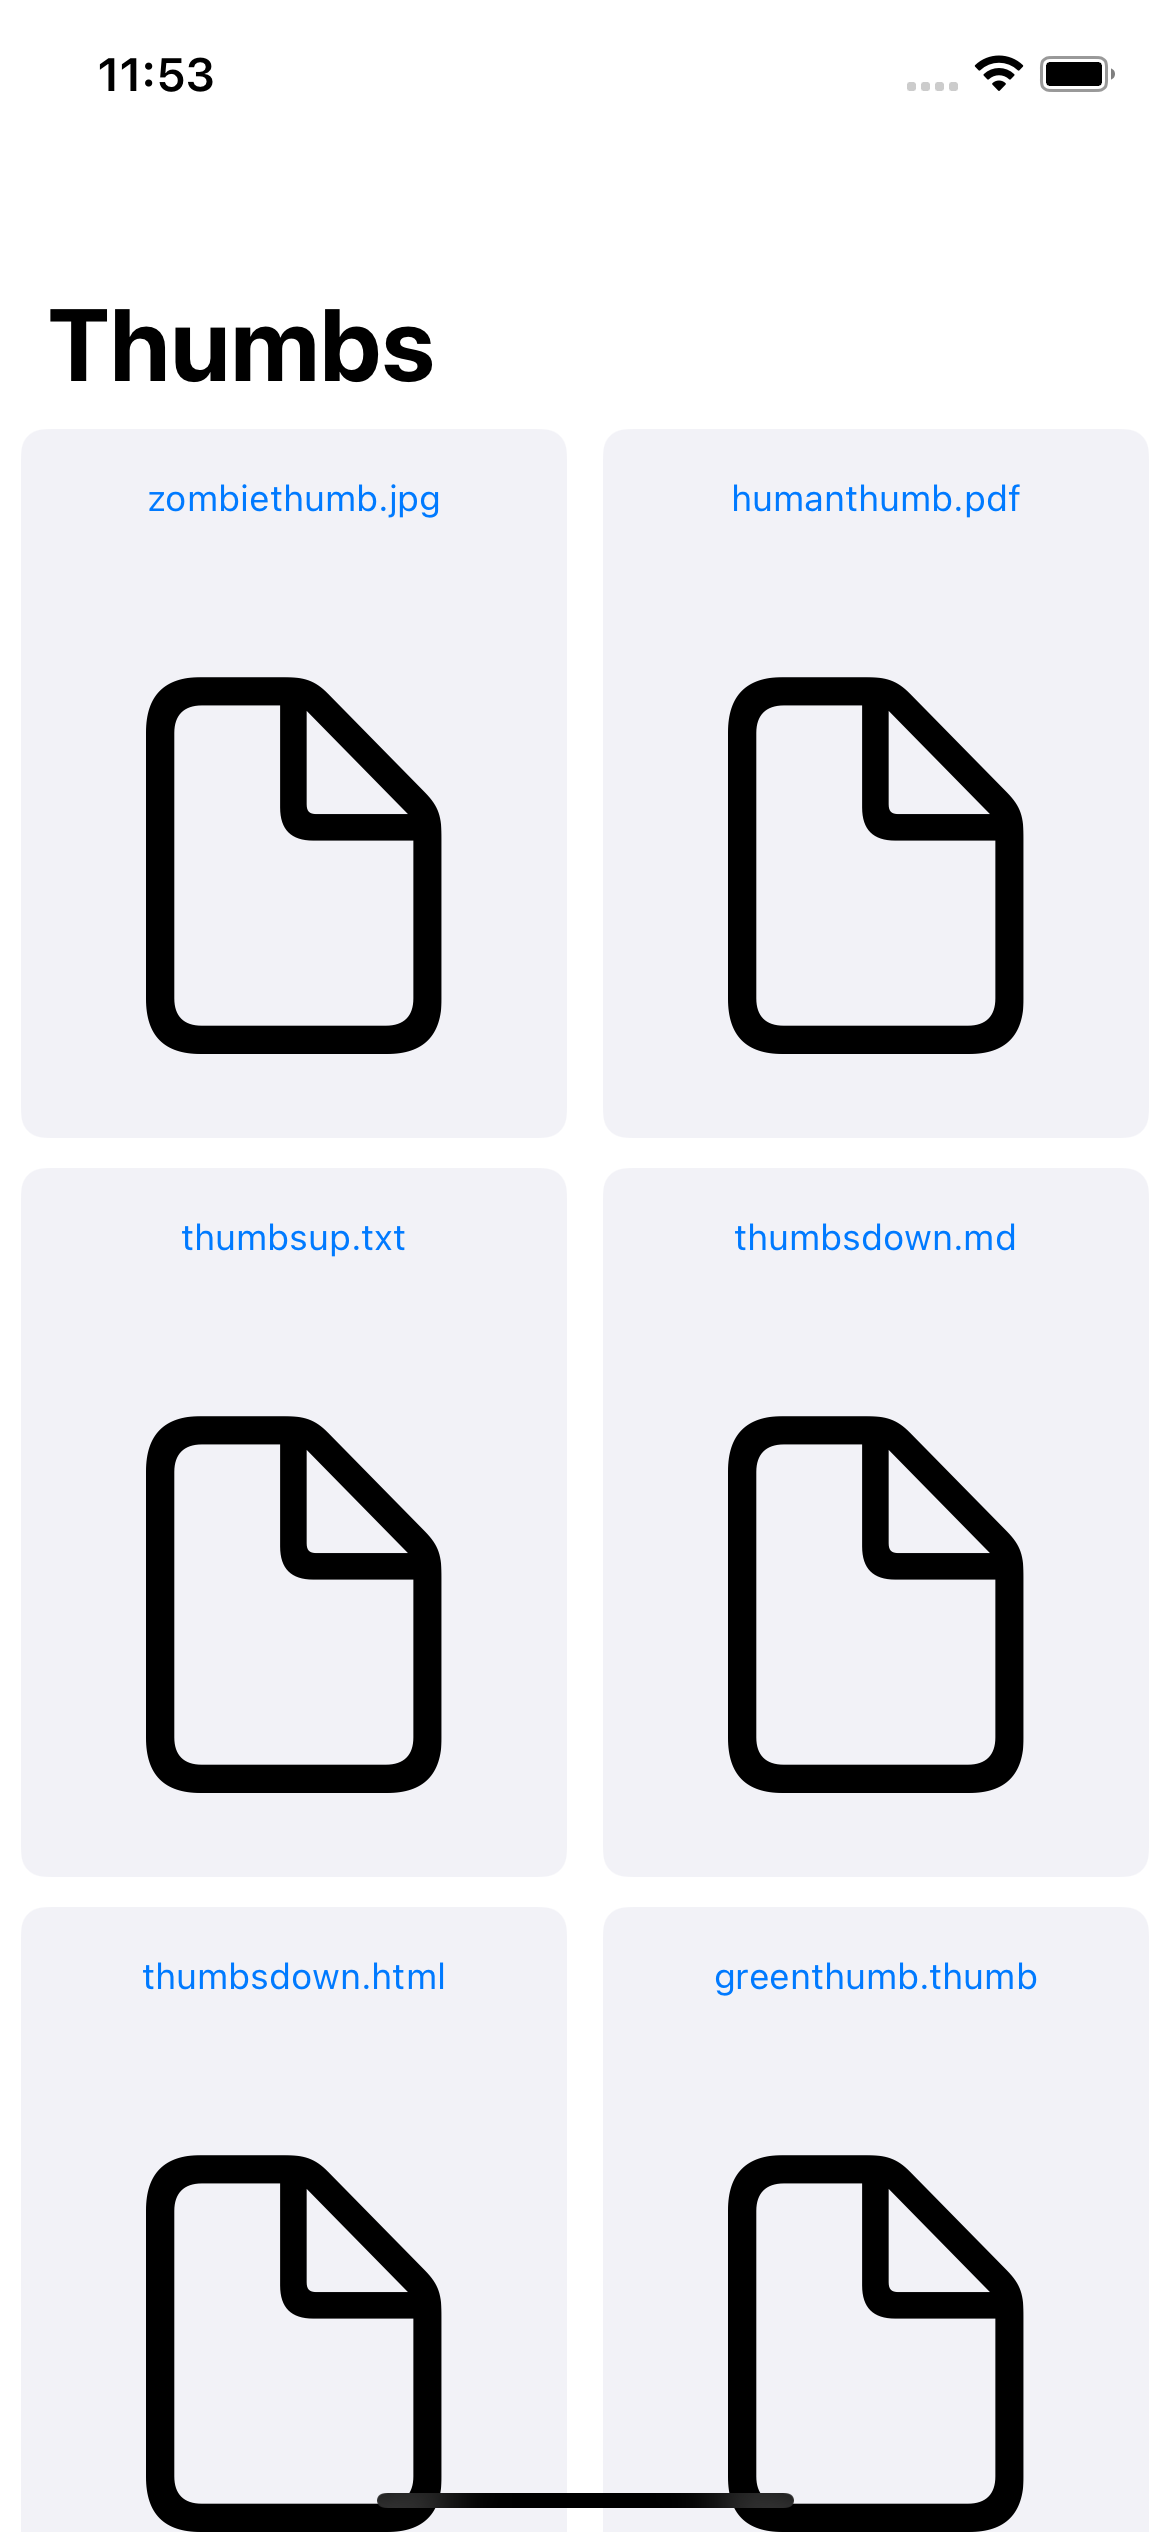 The RazeThumb app home screen containing a list of documents using a default placeholder icon for each one